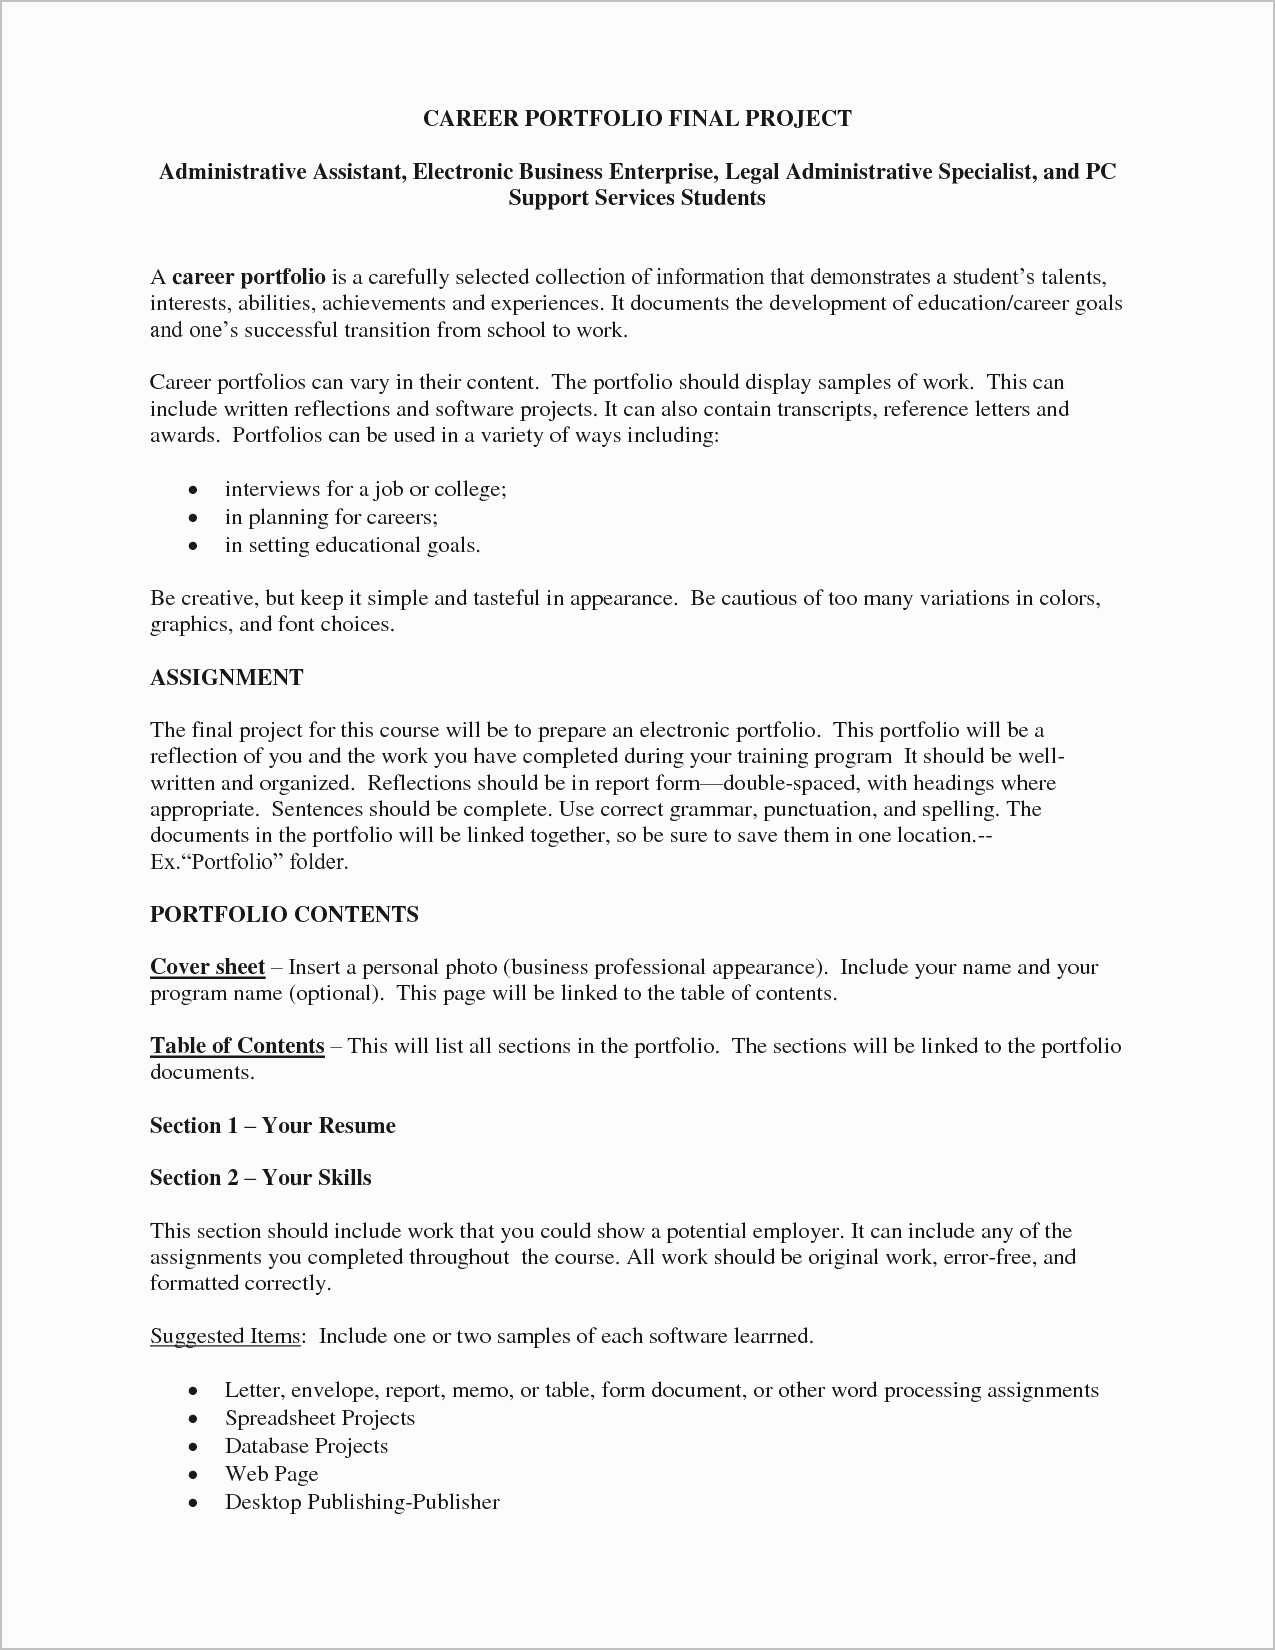 Keywords for Executive assistant Resume